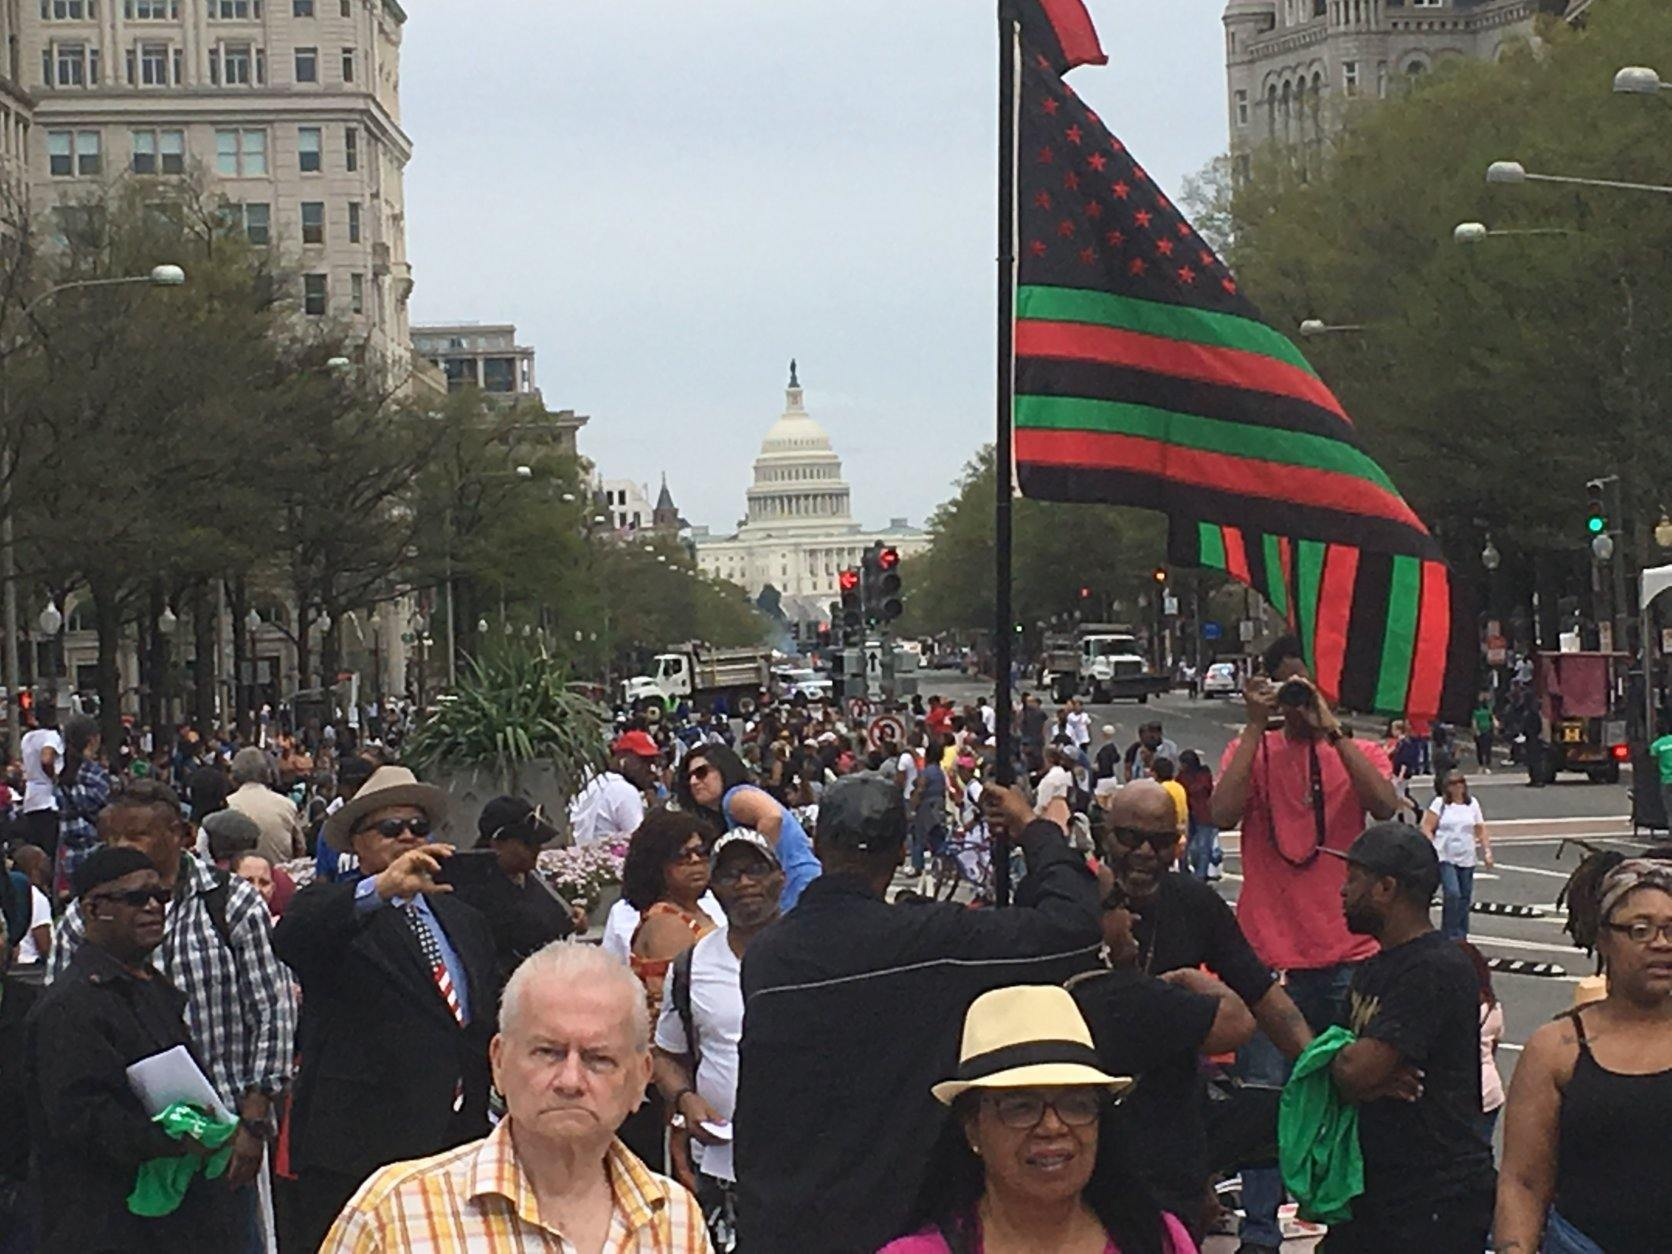 Hundreds attend the Emancipation Day Parade in D.C. on Saturday, April 13, 2019. (WTOP/Rick Massimo)